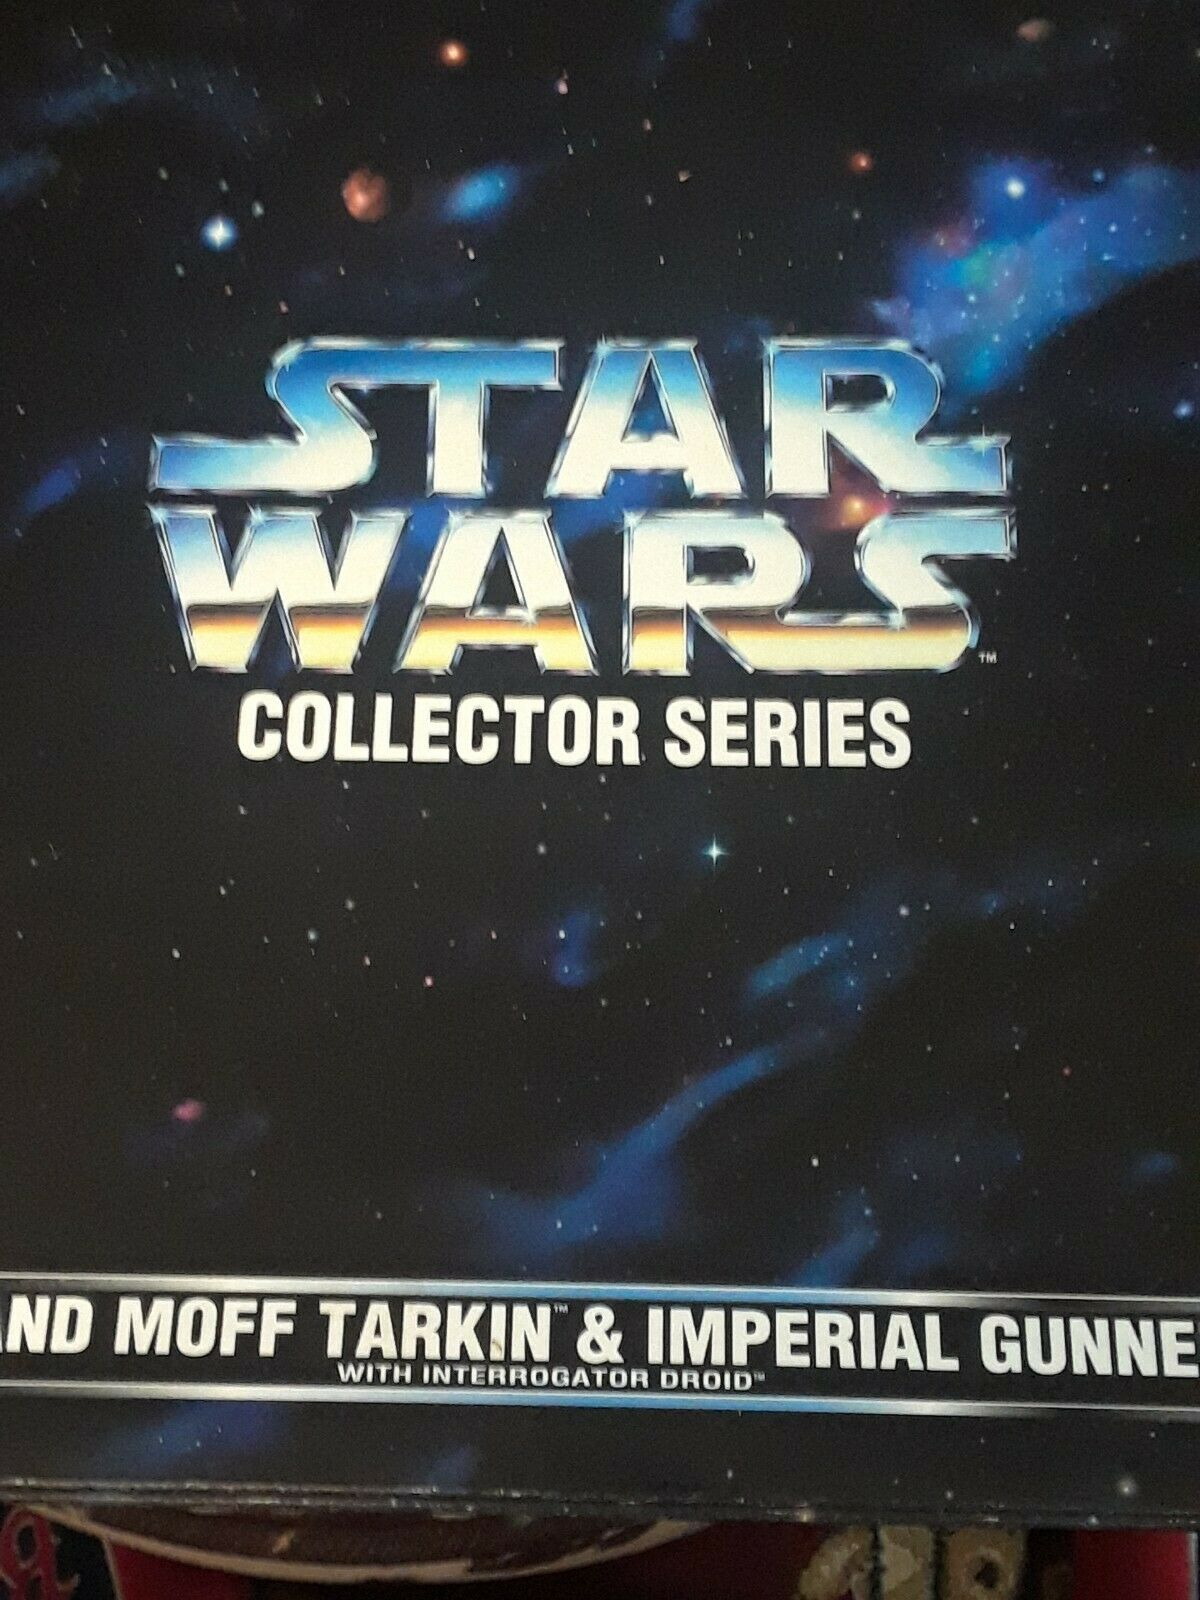 Star Wars Collector Series 12 in (environ 30.48 cm)